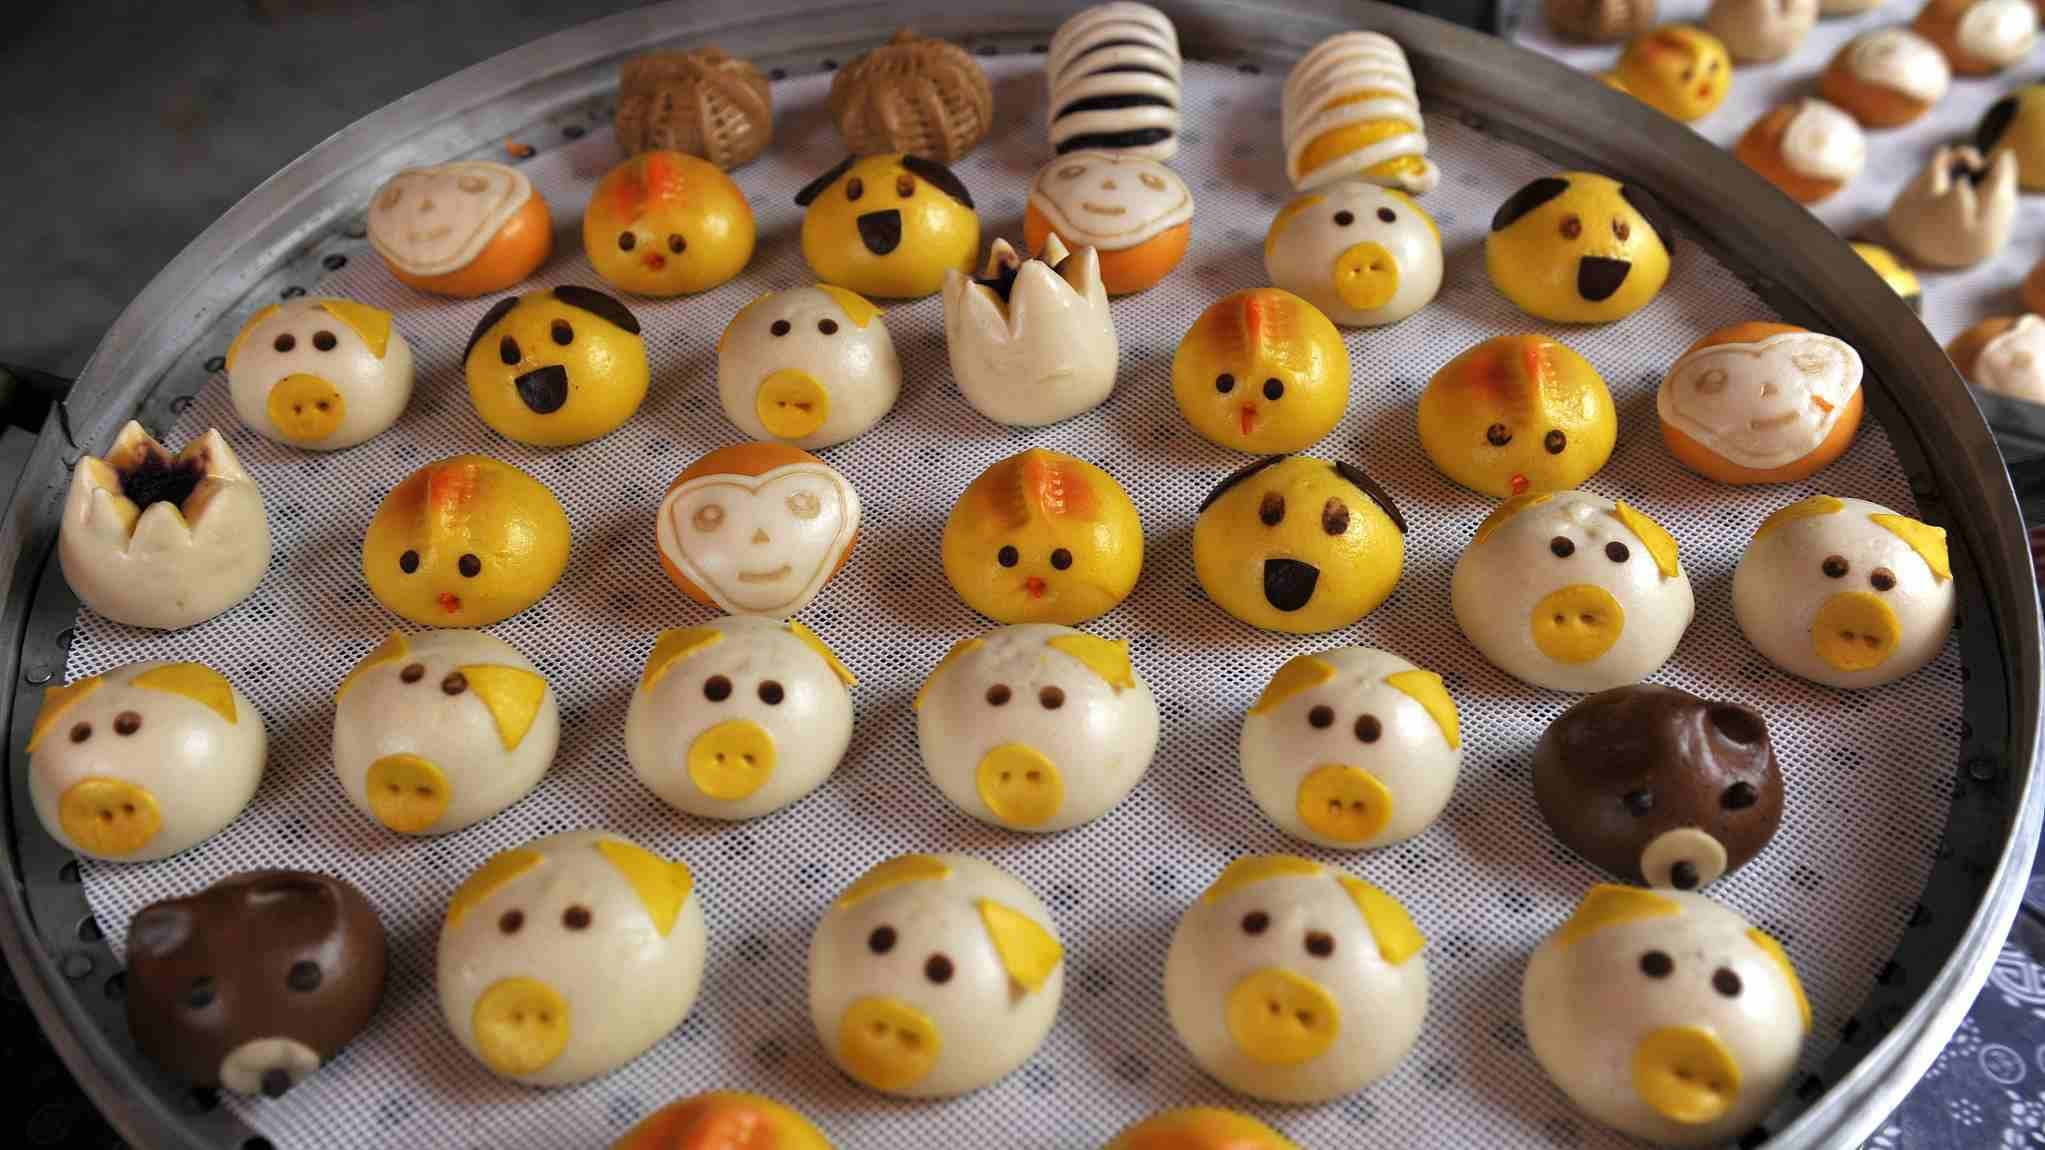 Chinese pastry chef creates cute and healthy buns